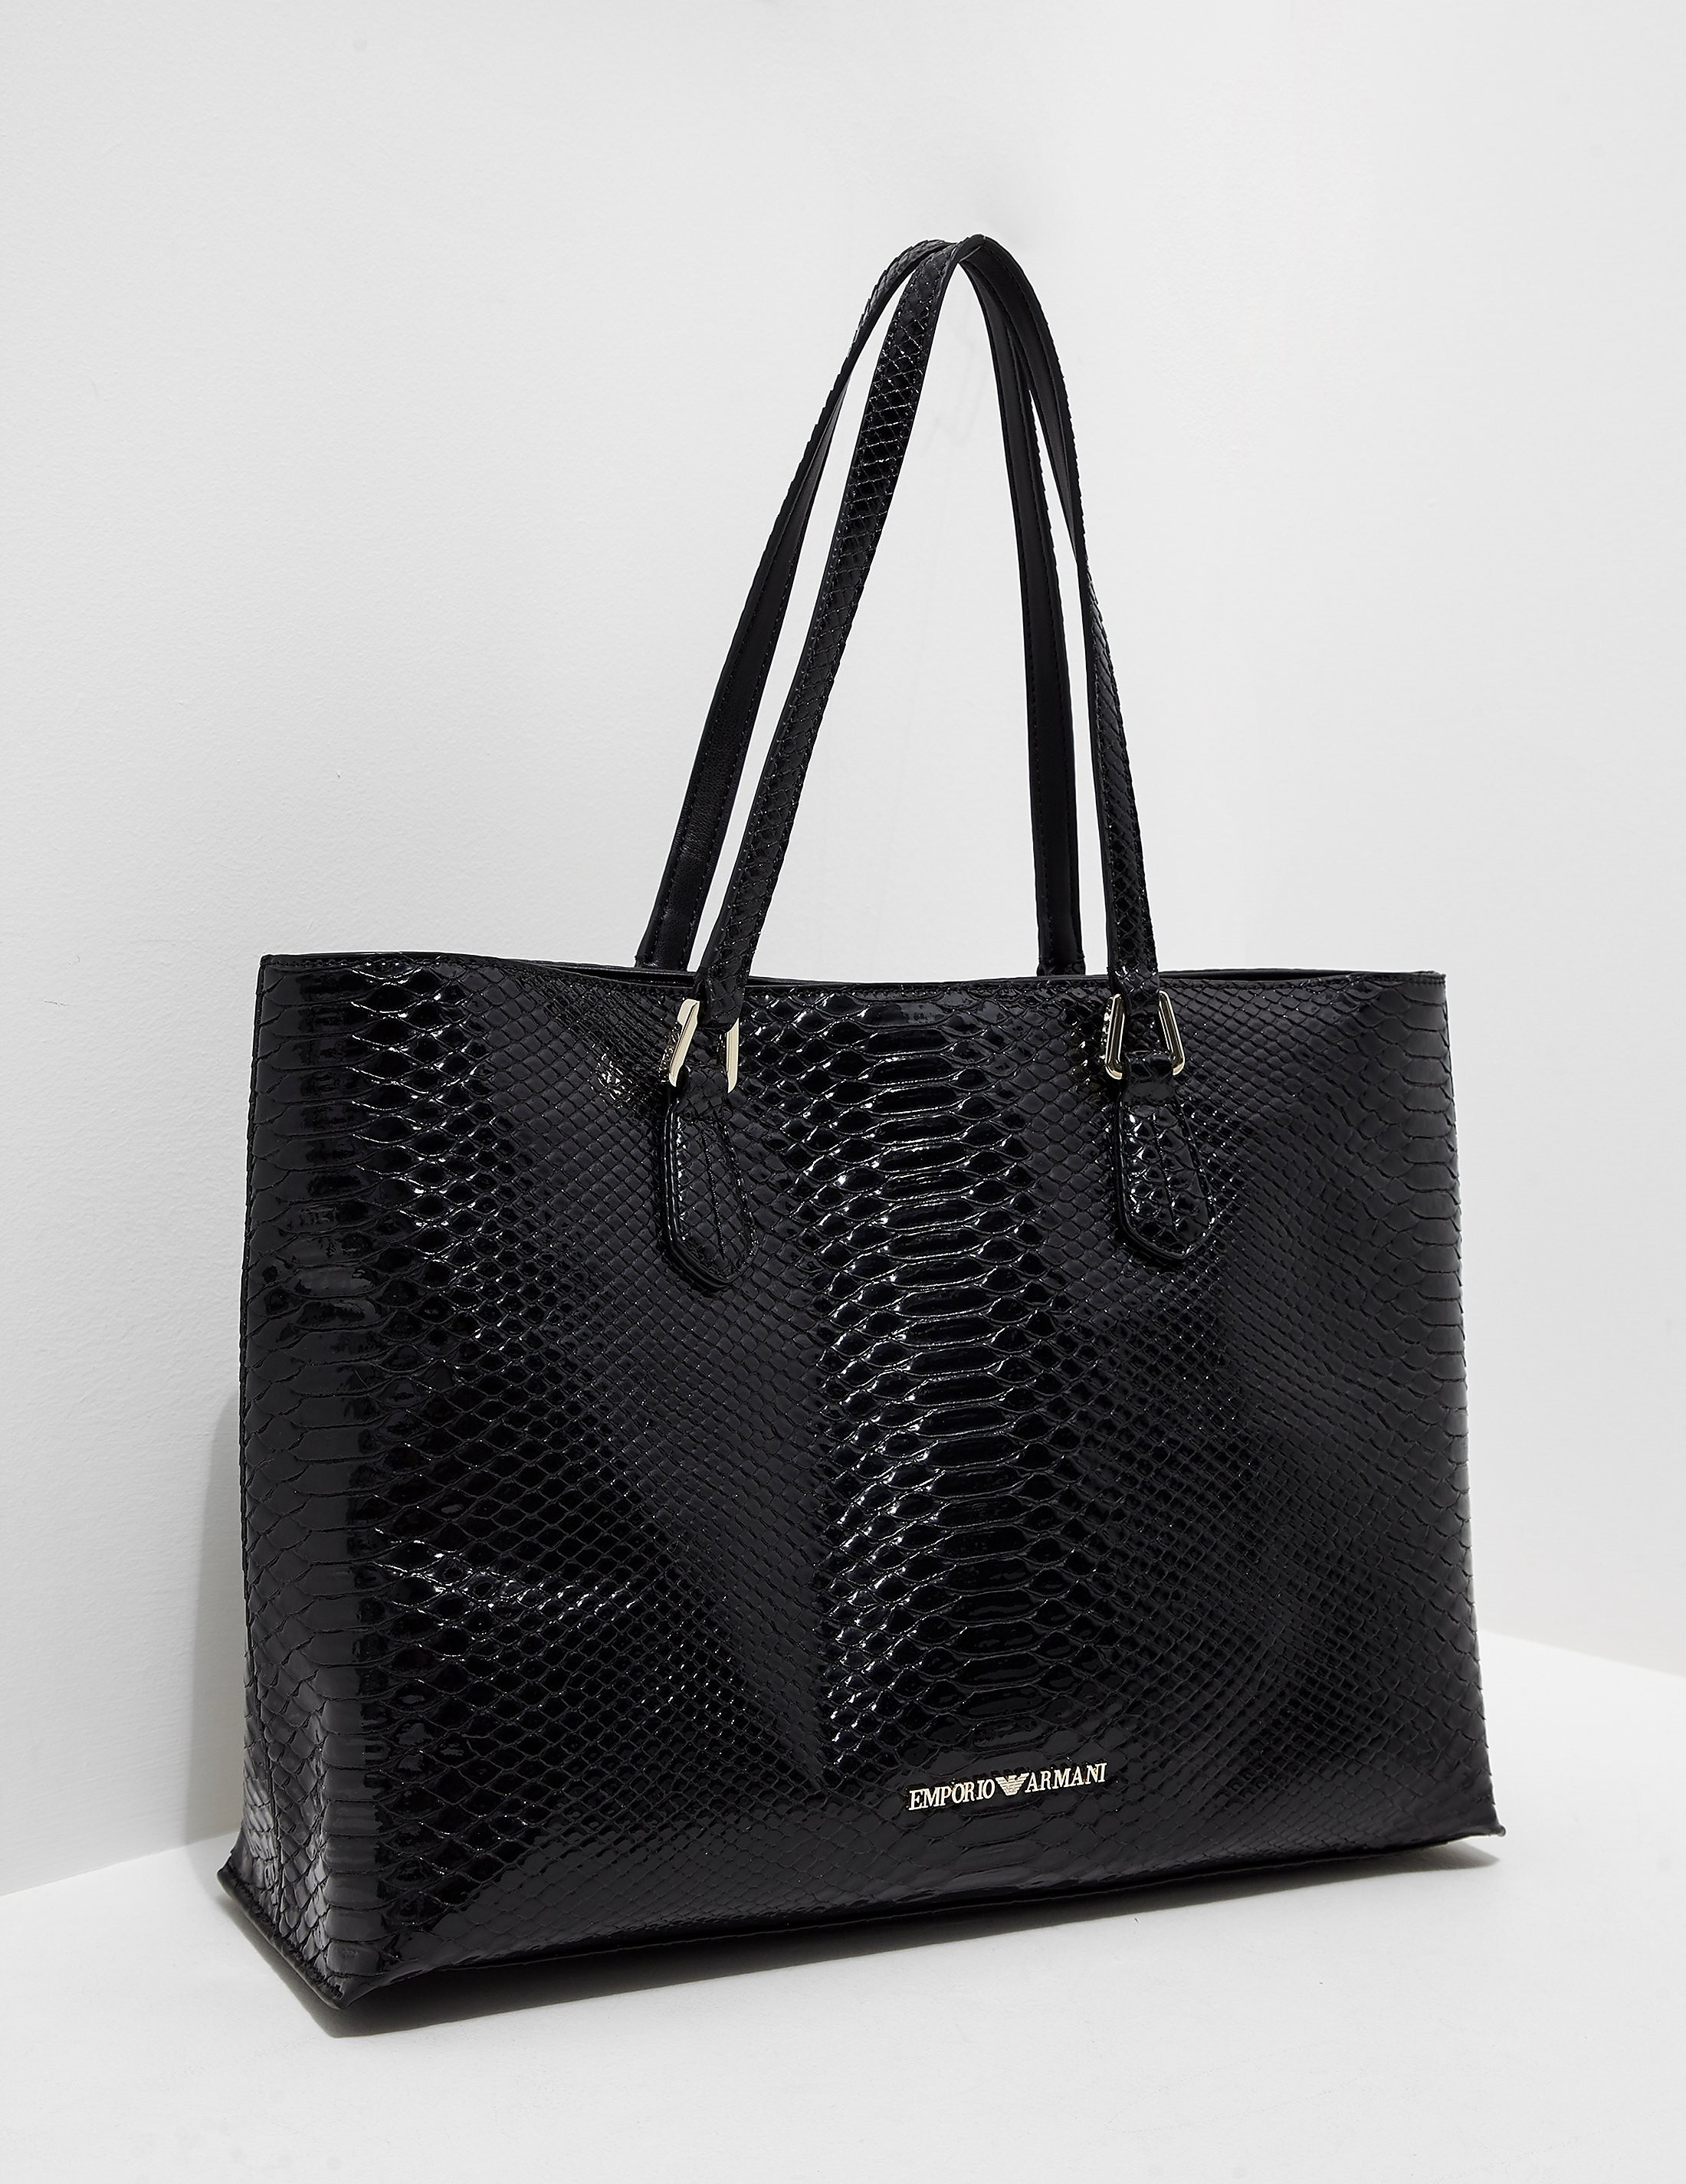 Emporio Armani Snakeskin Shopper Bag